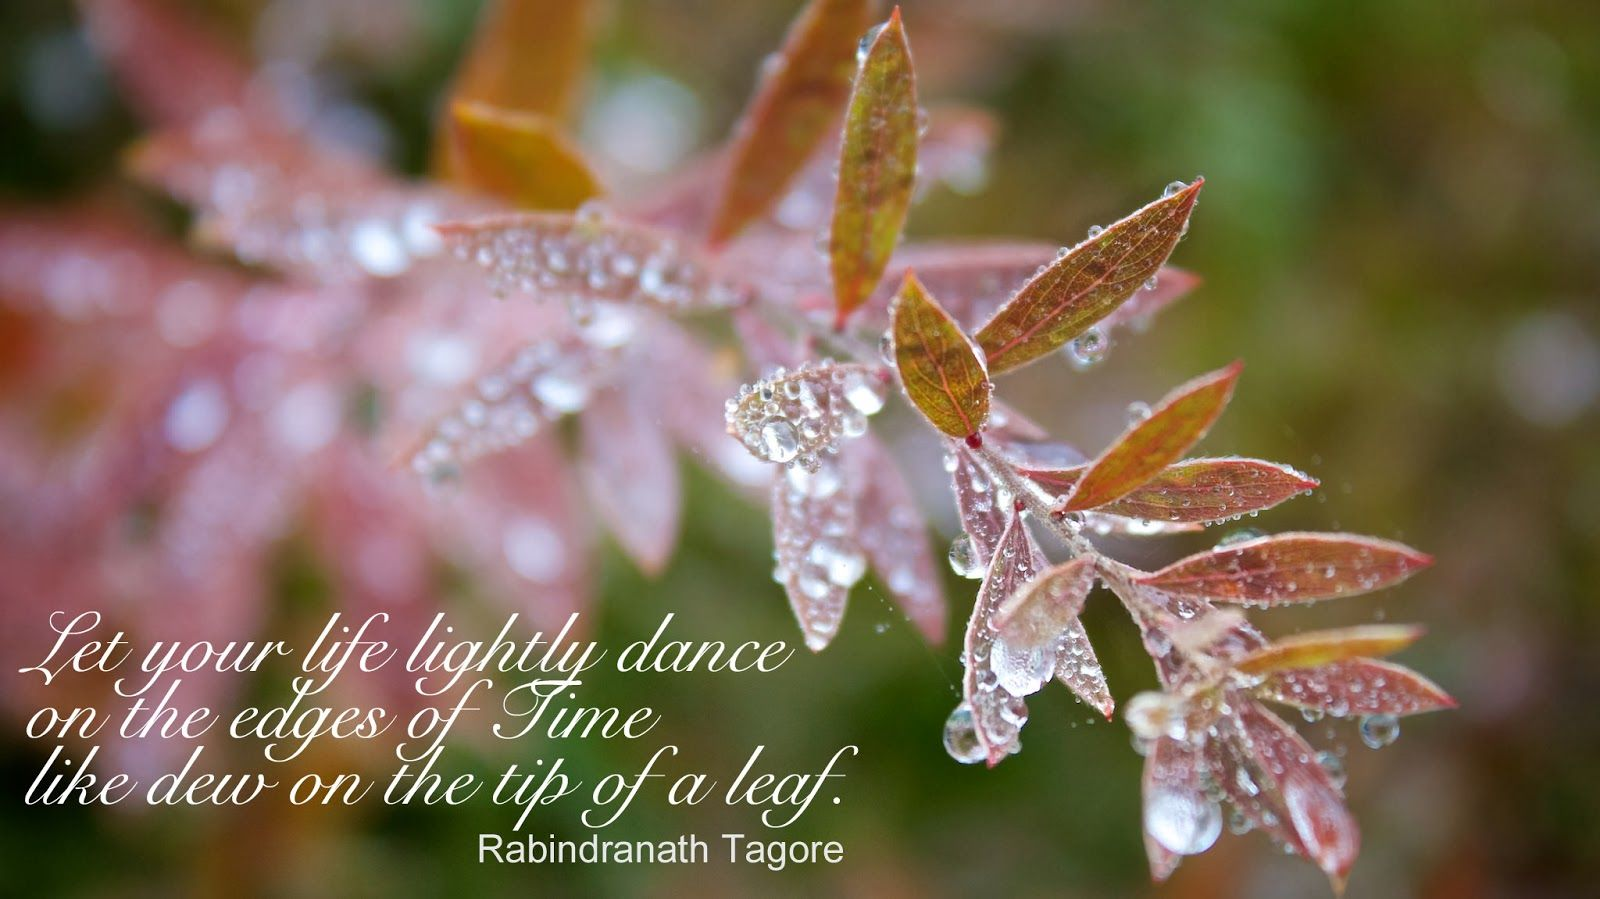 Morning Dew: Inspirational Poems